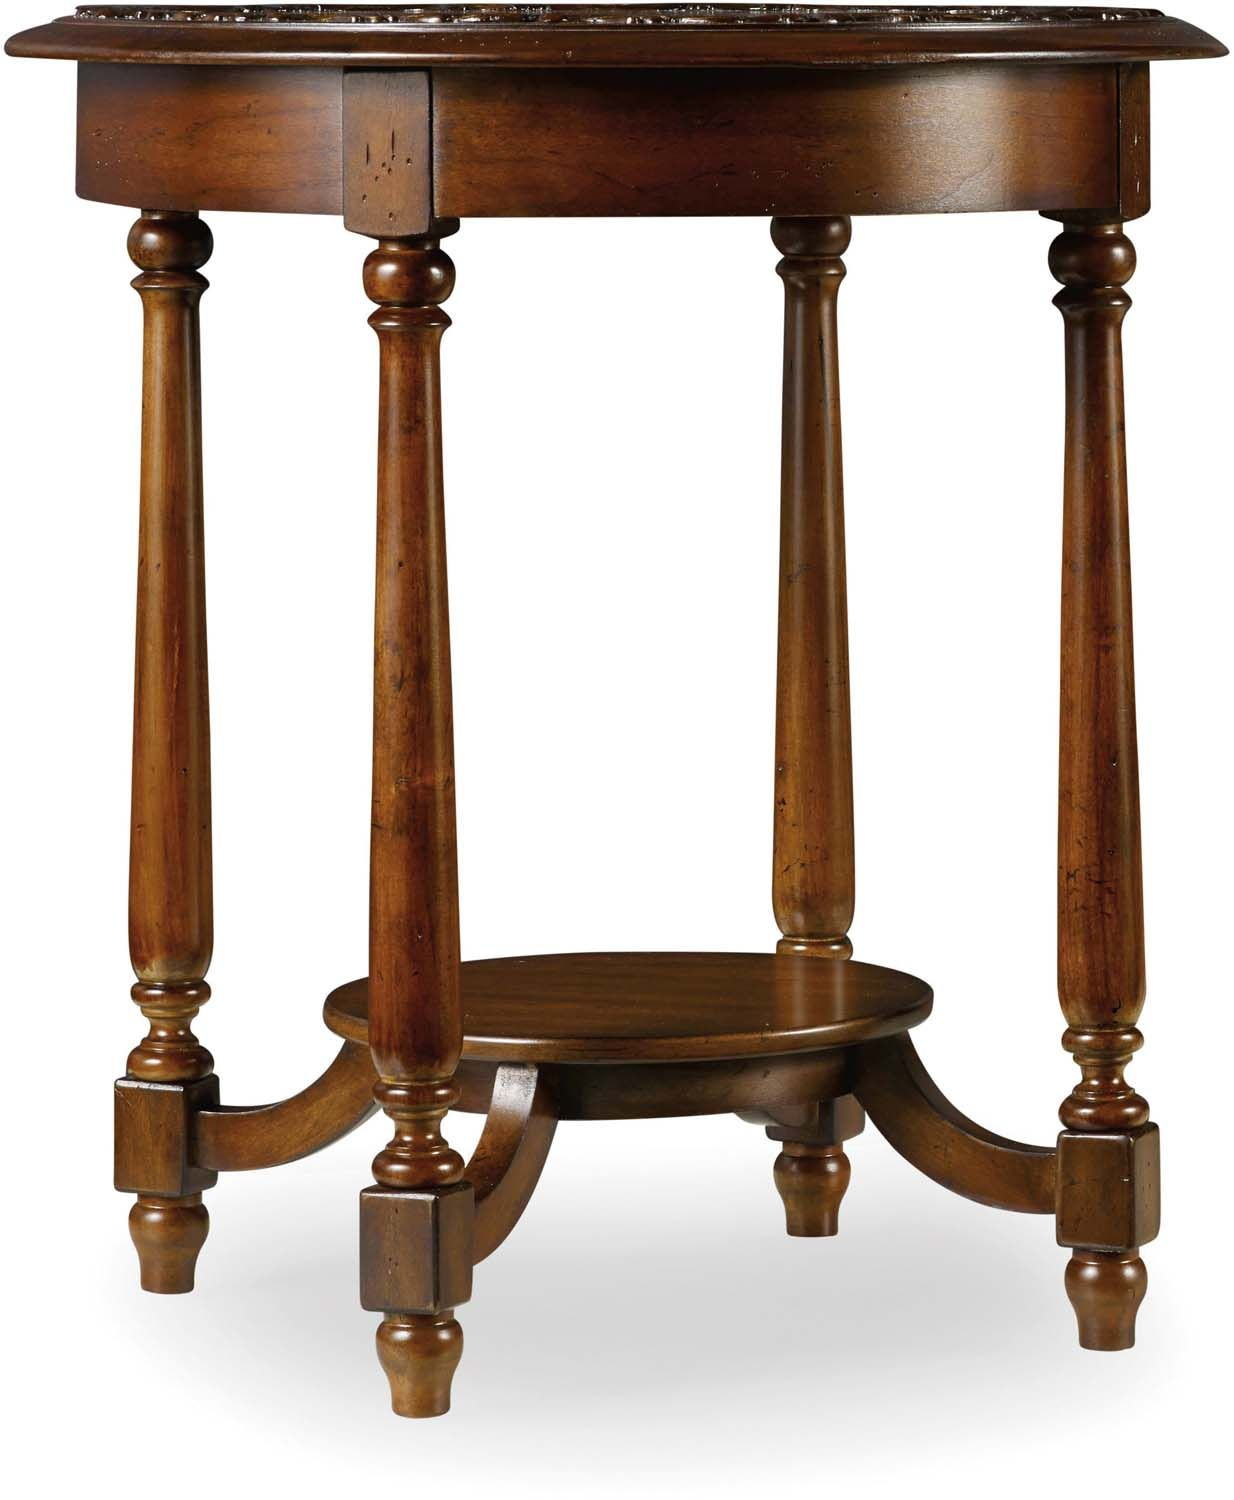 hooker furniture round accent table big with drawer living room nic umbrella tall glass side gold lamp chests and trunks world wood acrylic coffee vacuum inch off white end tables